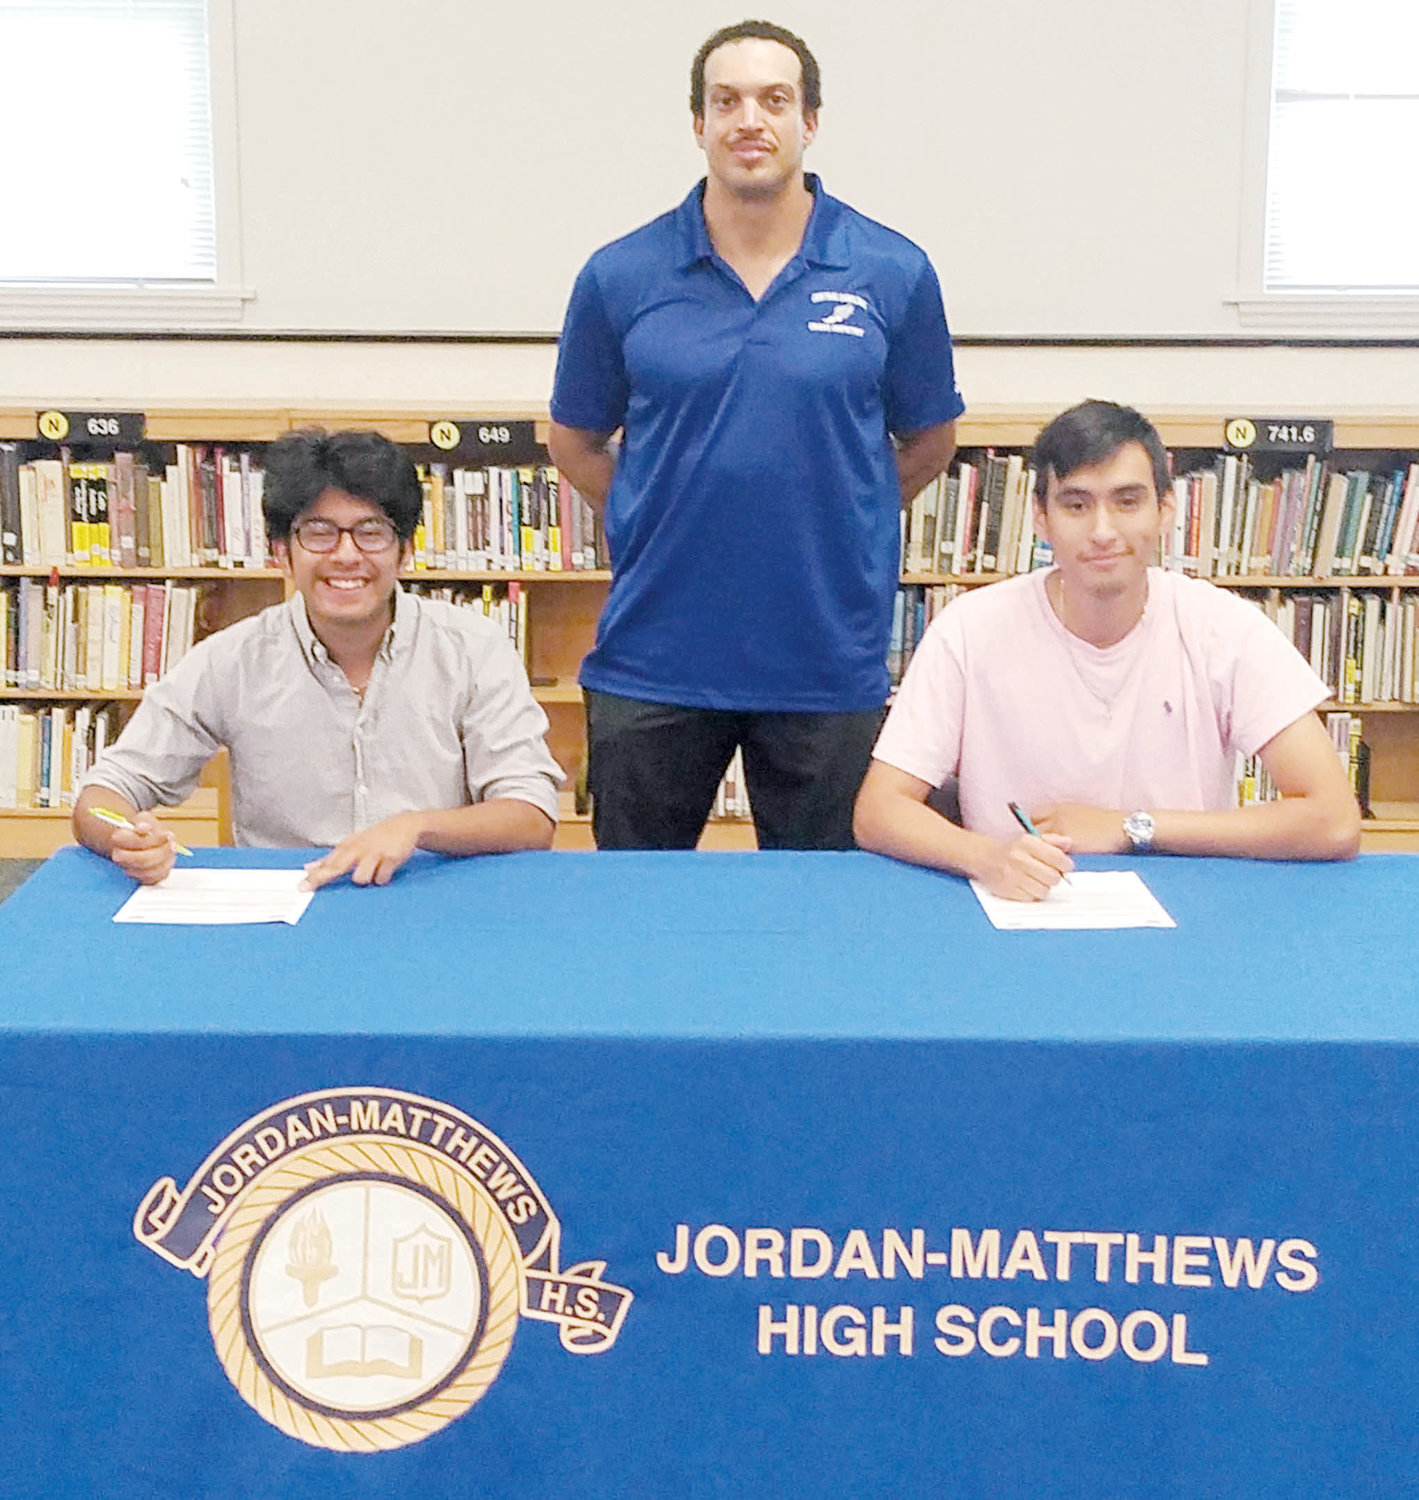 Eddy Girron and George Jucinto of Jordan-Matthews signed with CCCC to continue their cross country careers at the collegiate level. Eddy Girron (seated, left) and George Jucinto (seated, right) are shown signing with the Central Carolina Community College cross country program last week at J-M. Standing is CCCC Head Cross Country Coach Richard Briggs.